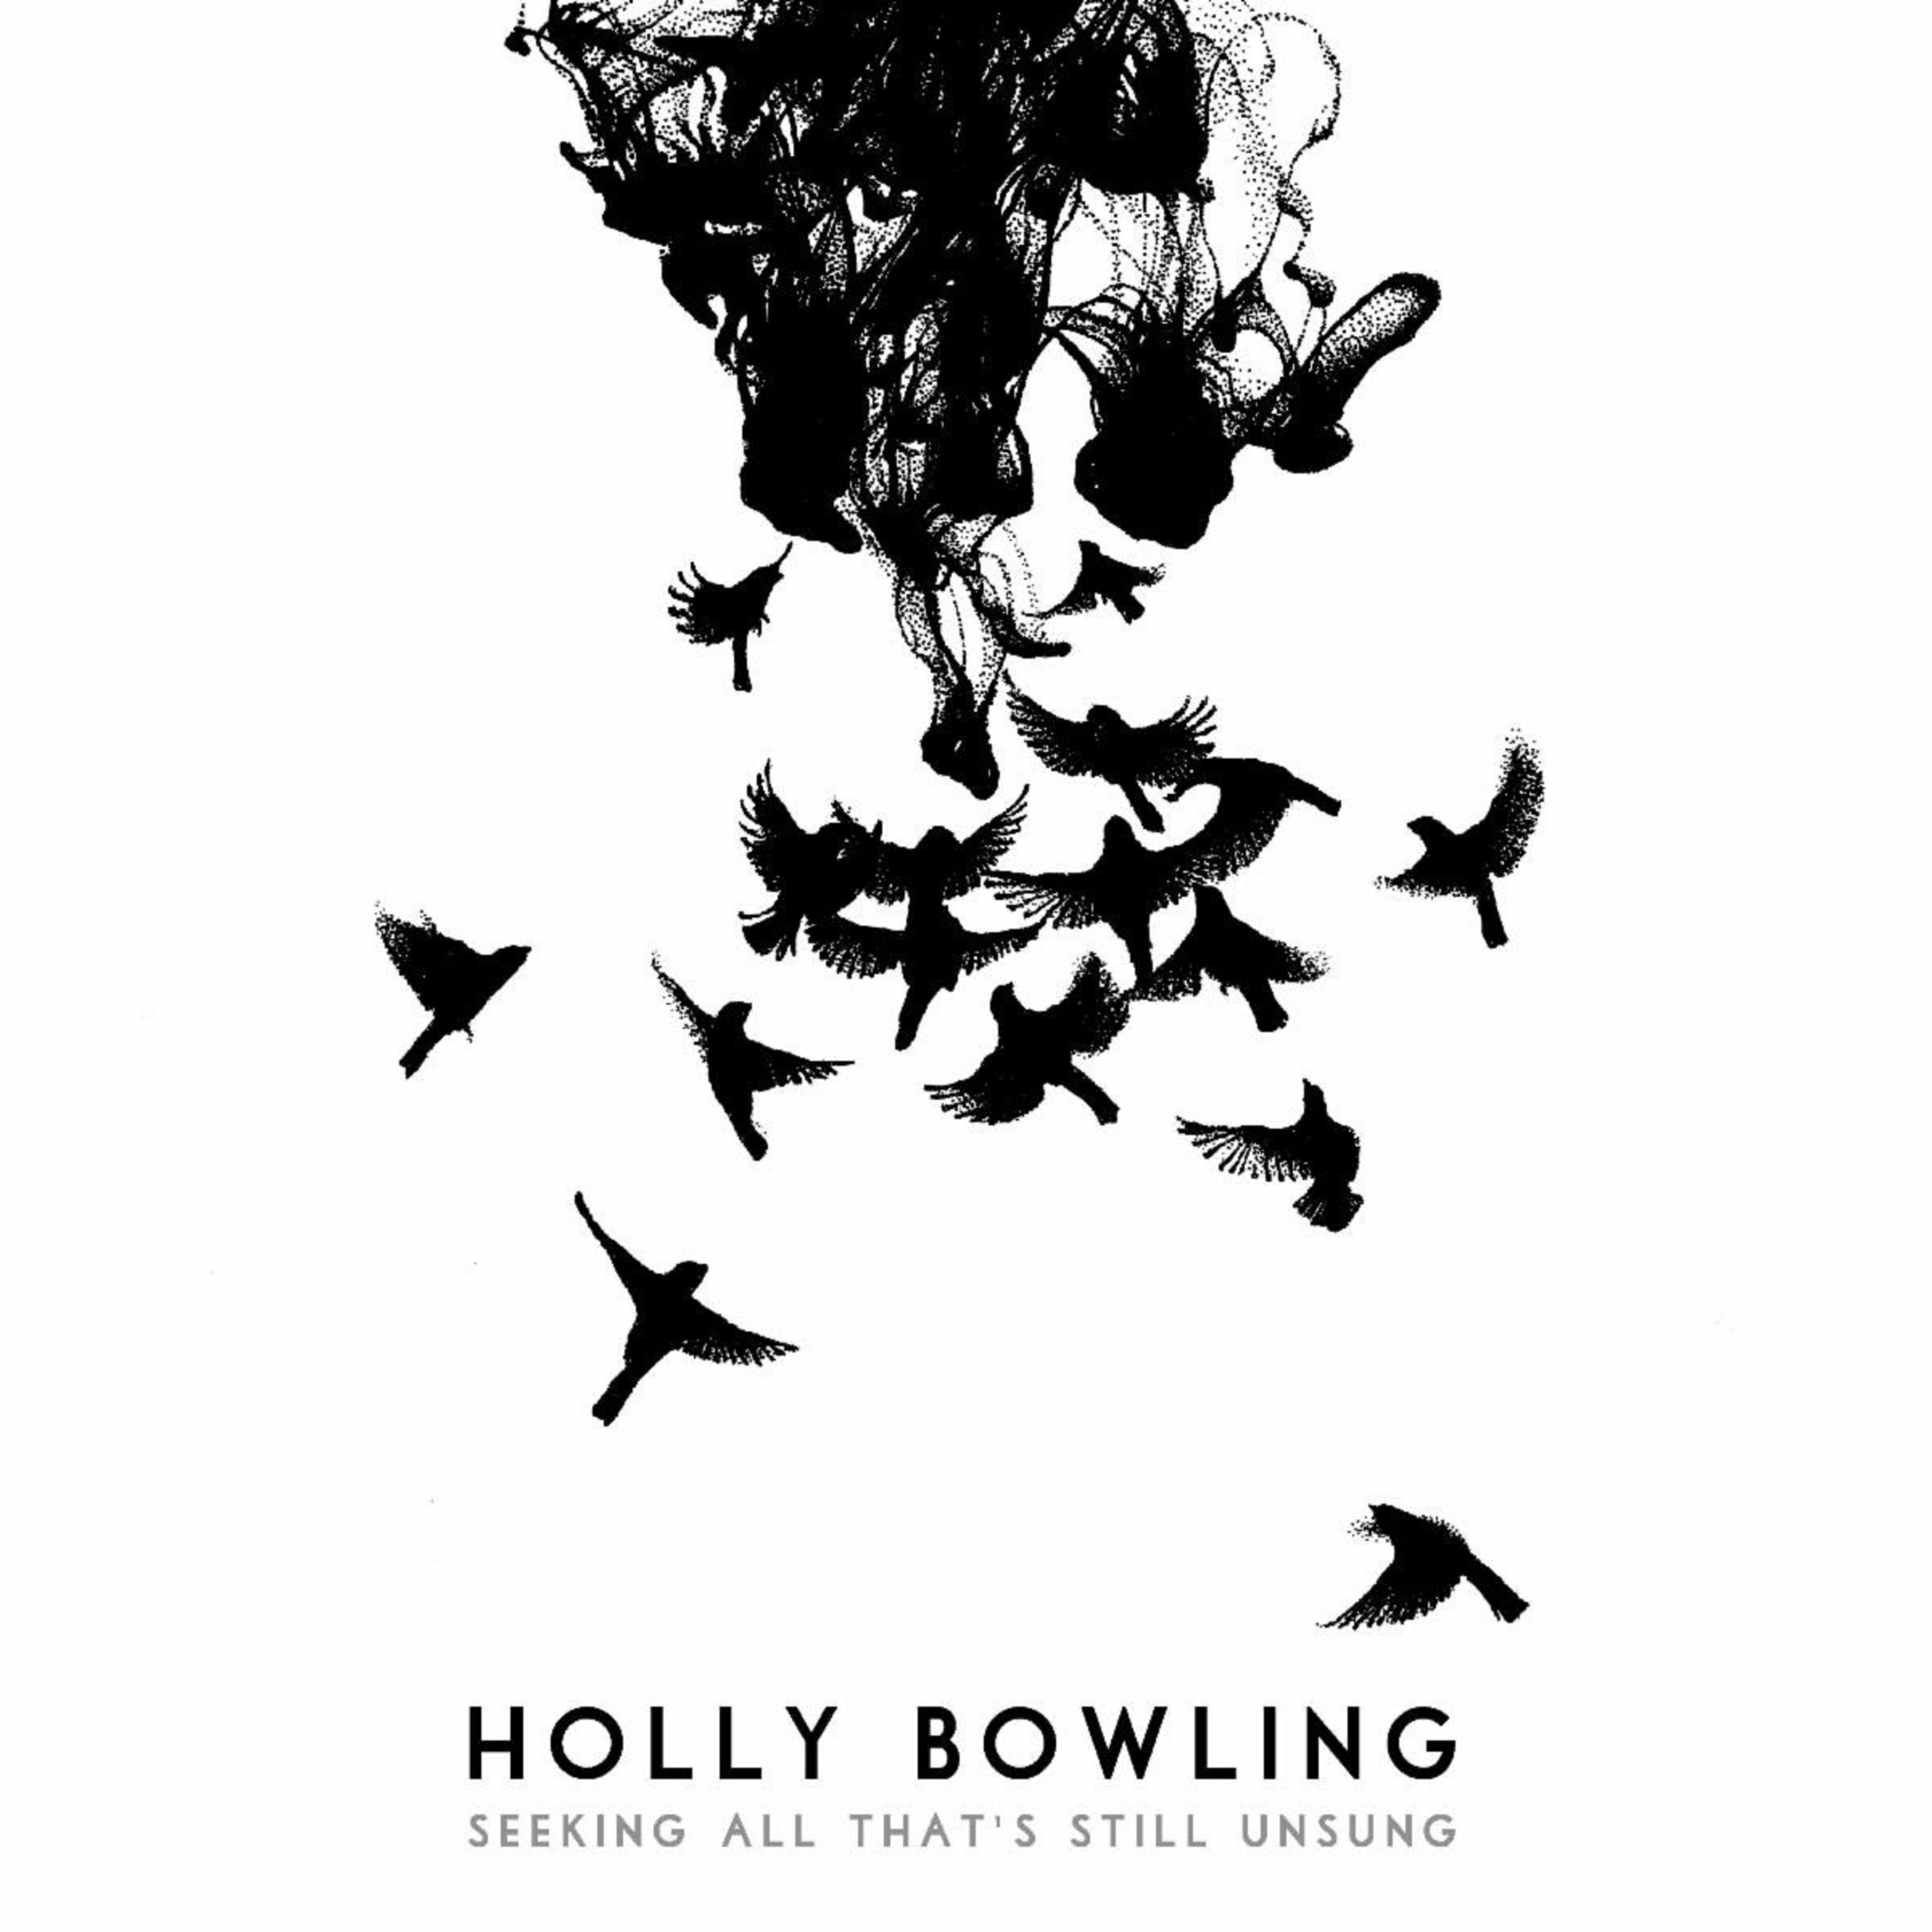 Holly Bowling interprets Grateful Dead songbook on new album